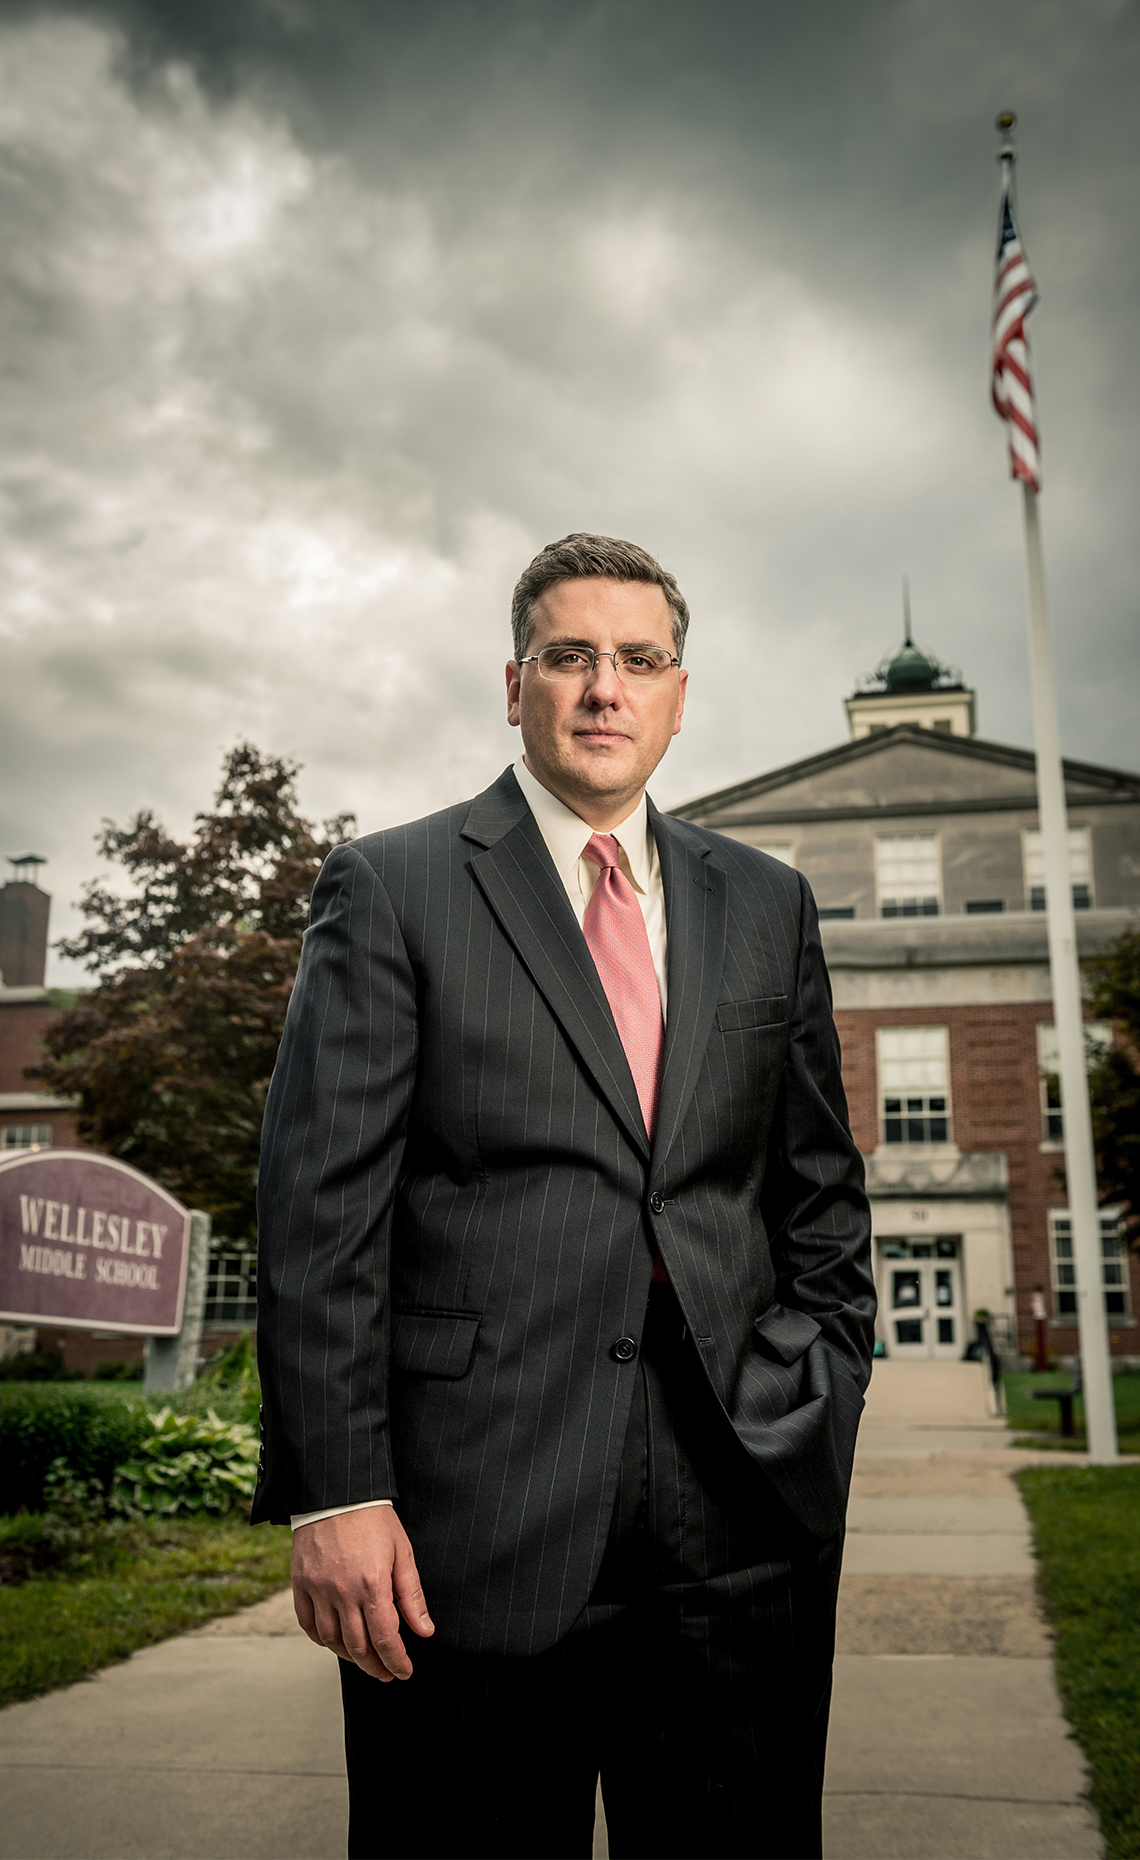 Dr. David Lussier, superintendant of schools in Wellesley, MA